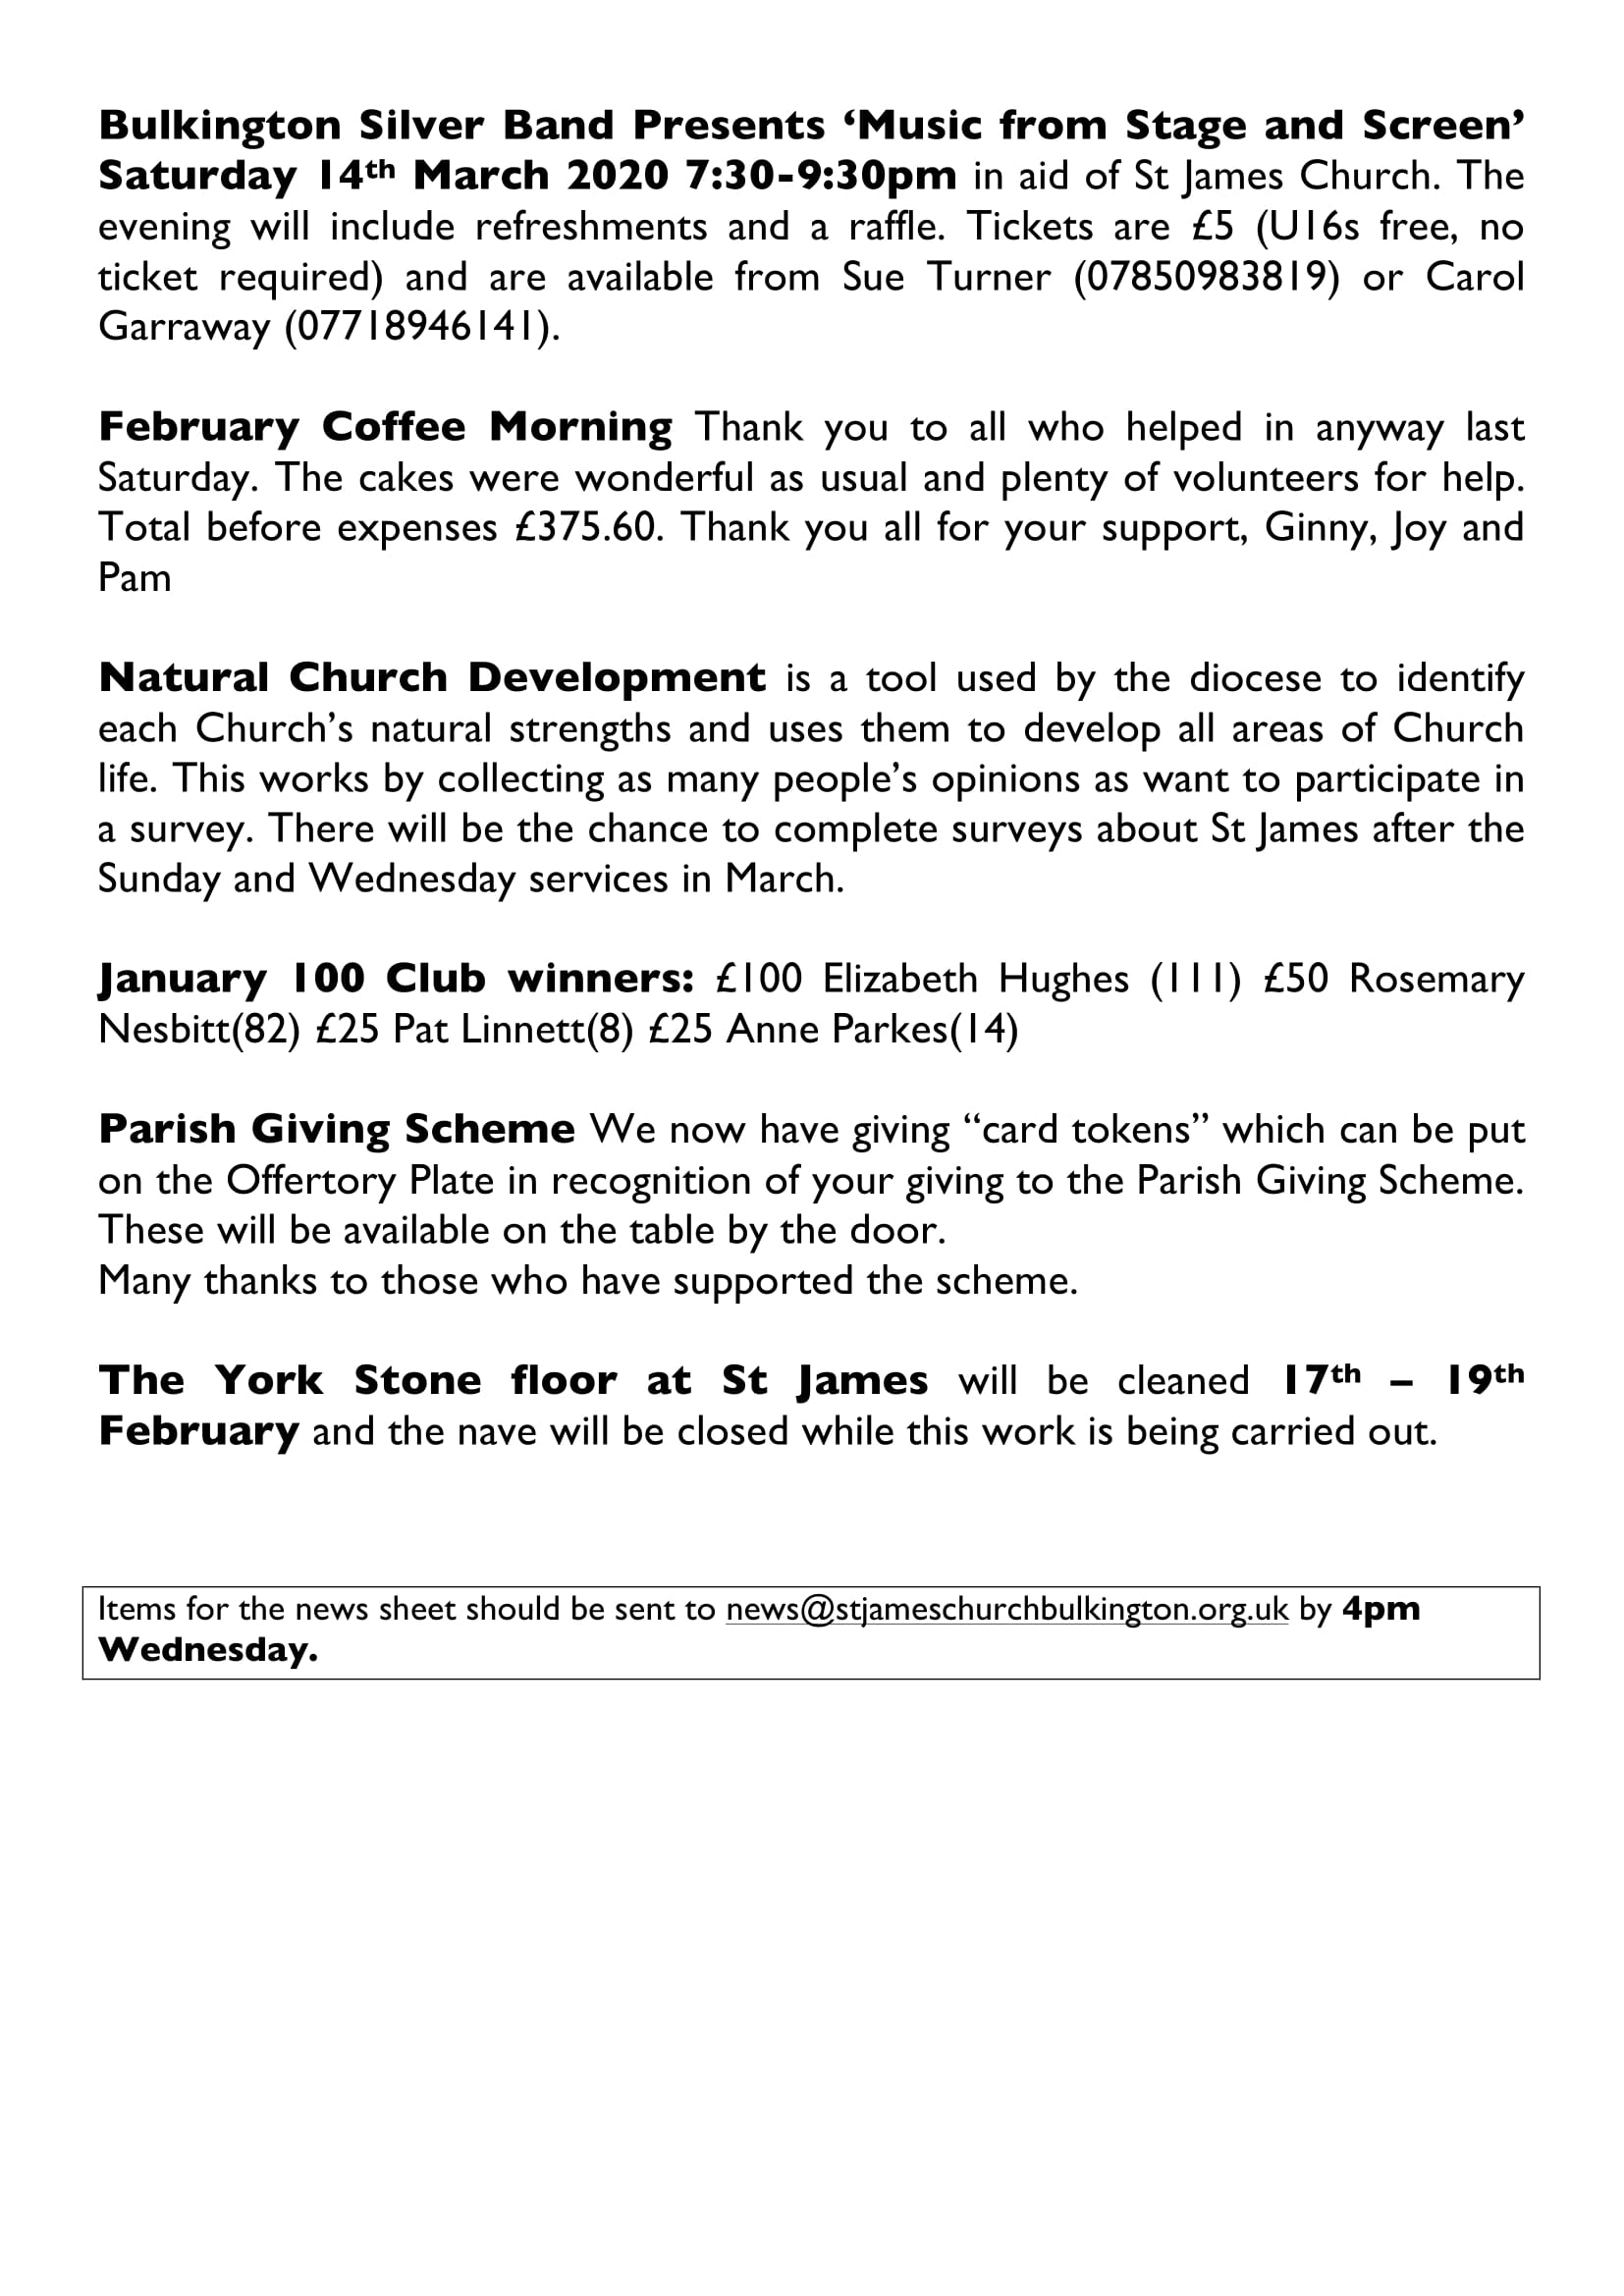 News sheet 9Feb20 3